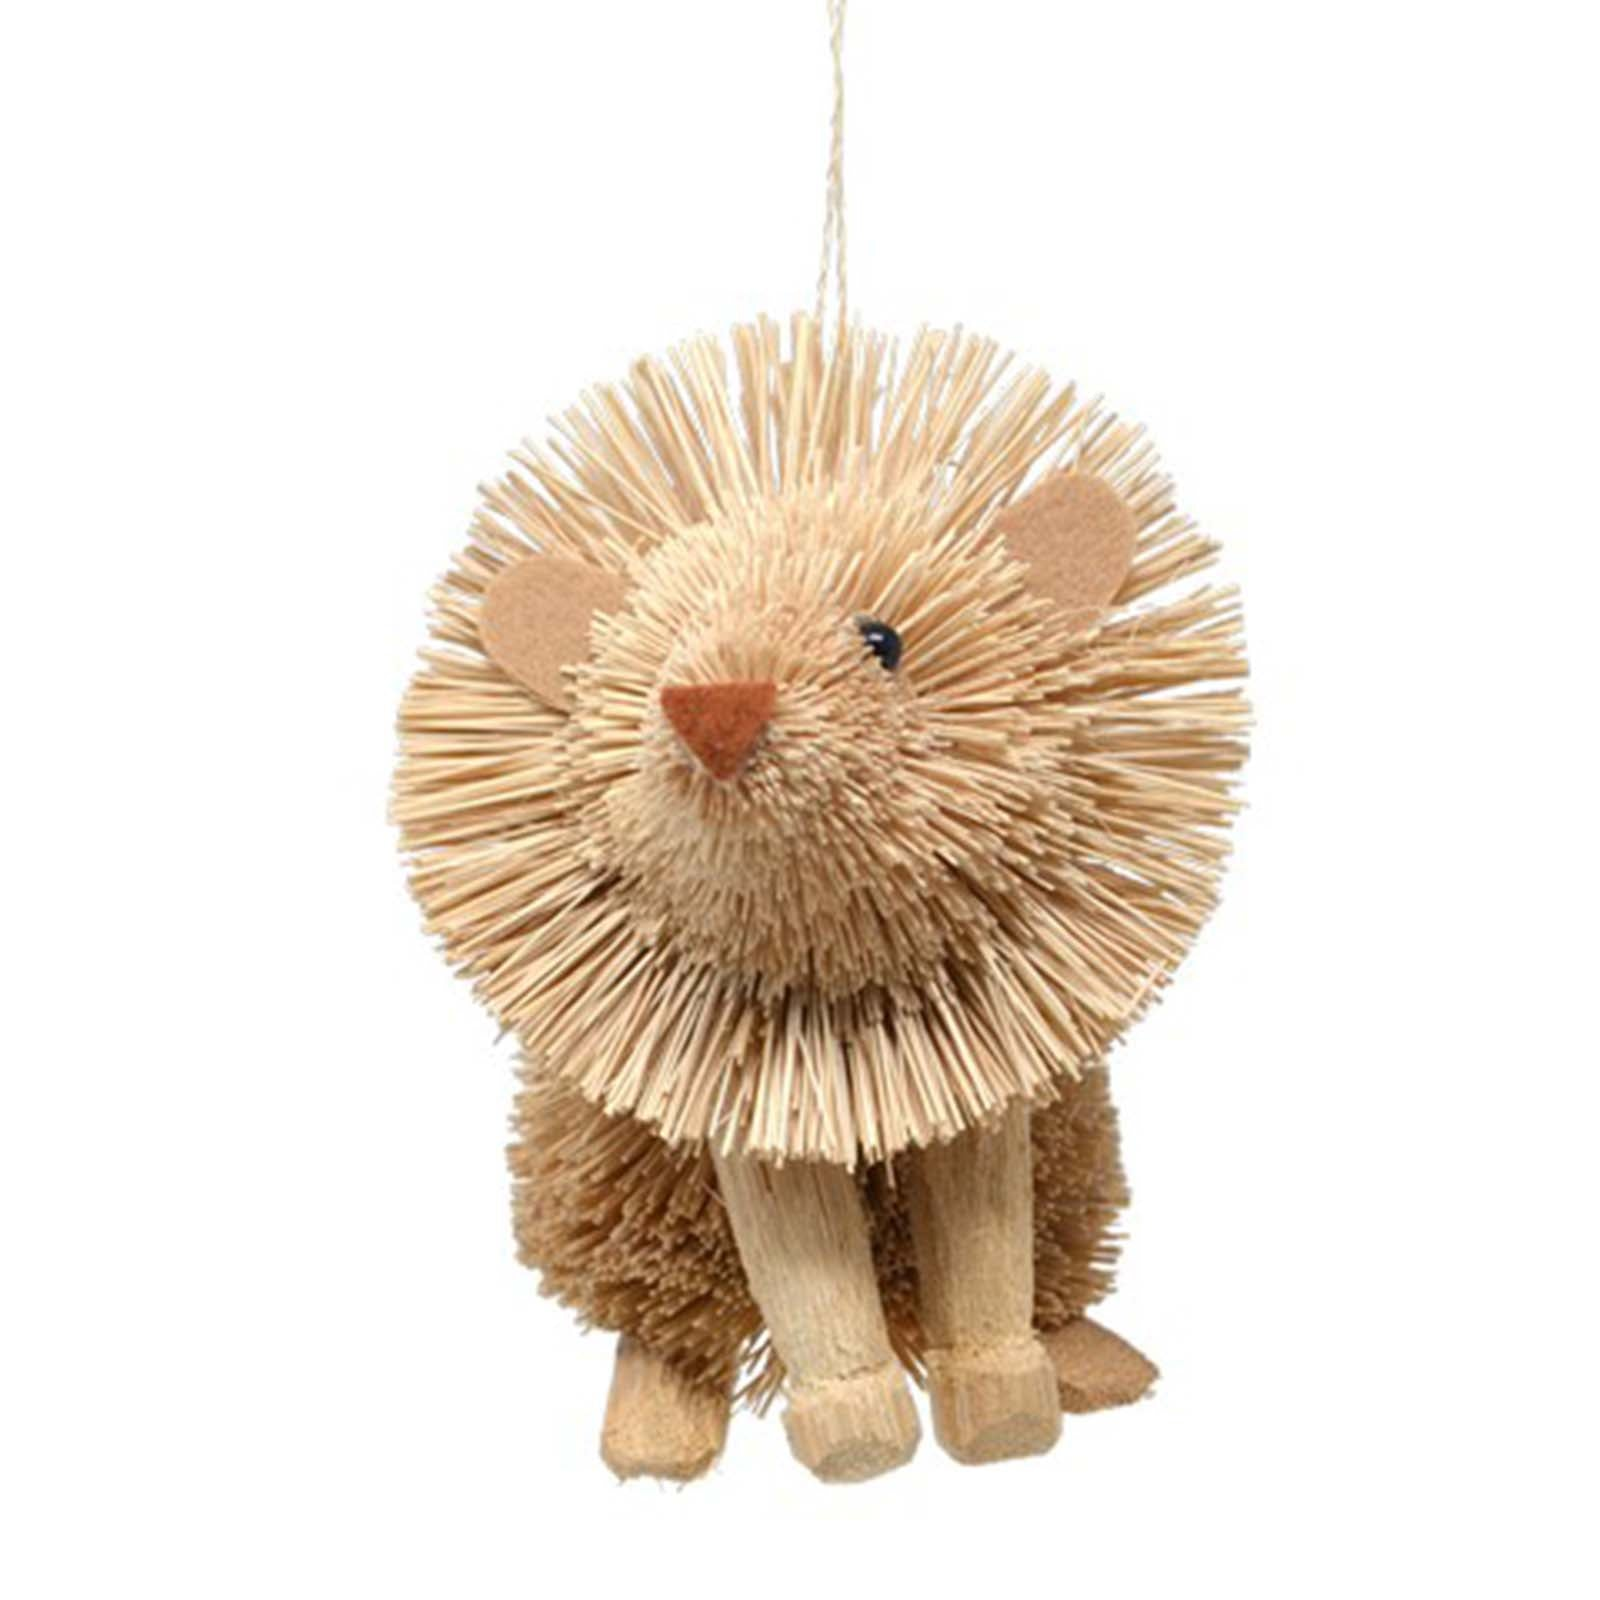 Gift Essentials Lion brush art ornament